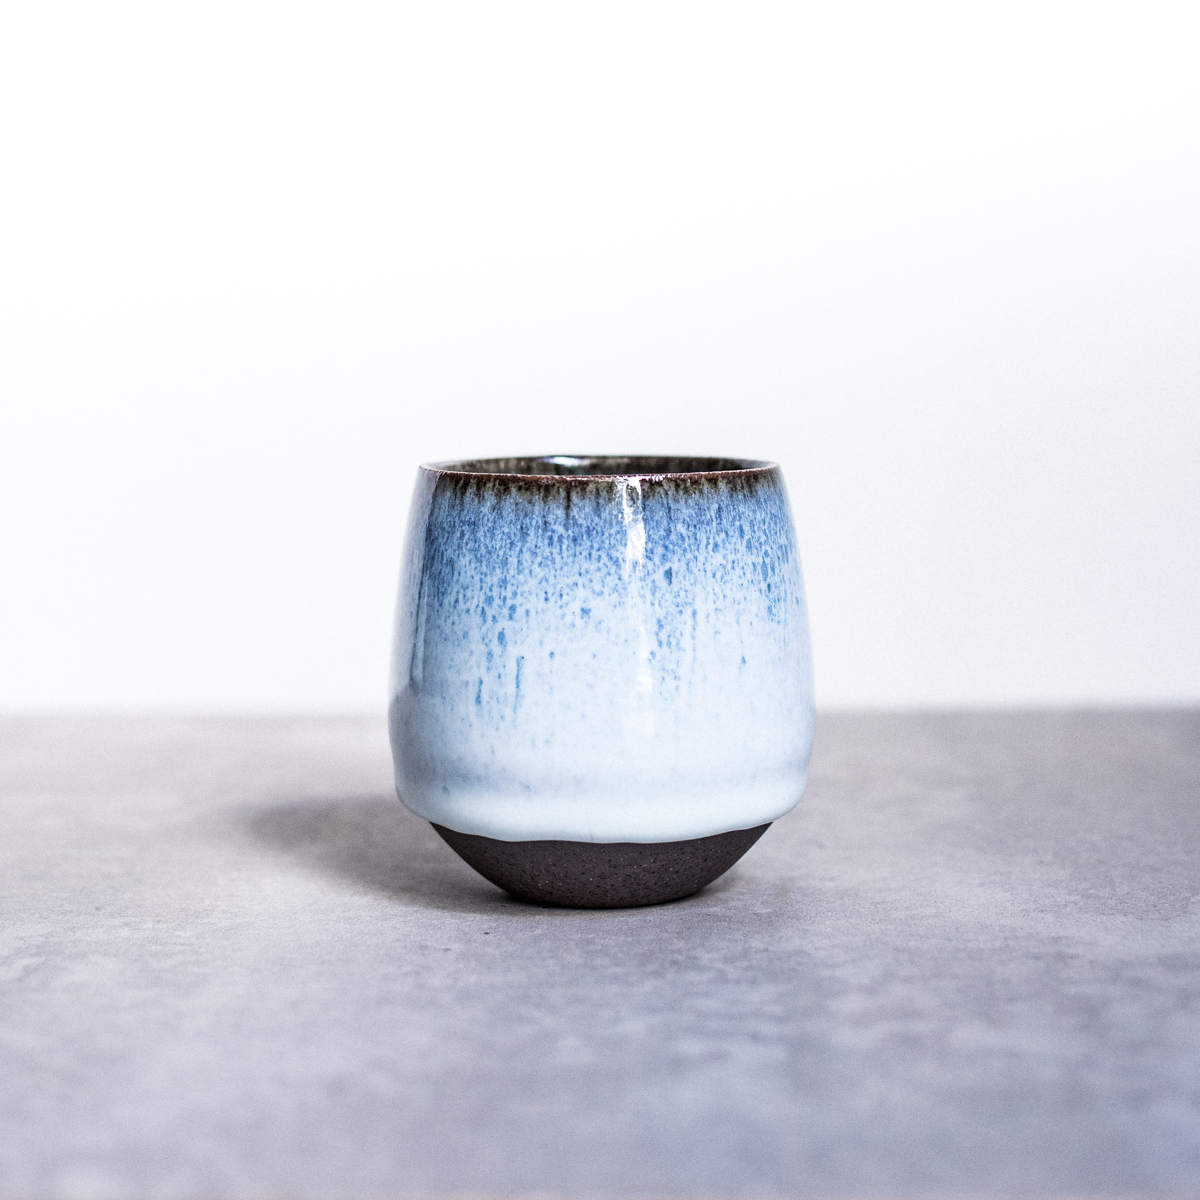 Magnolia_mountain_reef_small_tumbler_ceramic.jpg